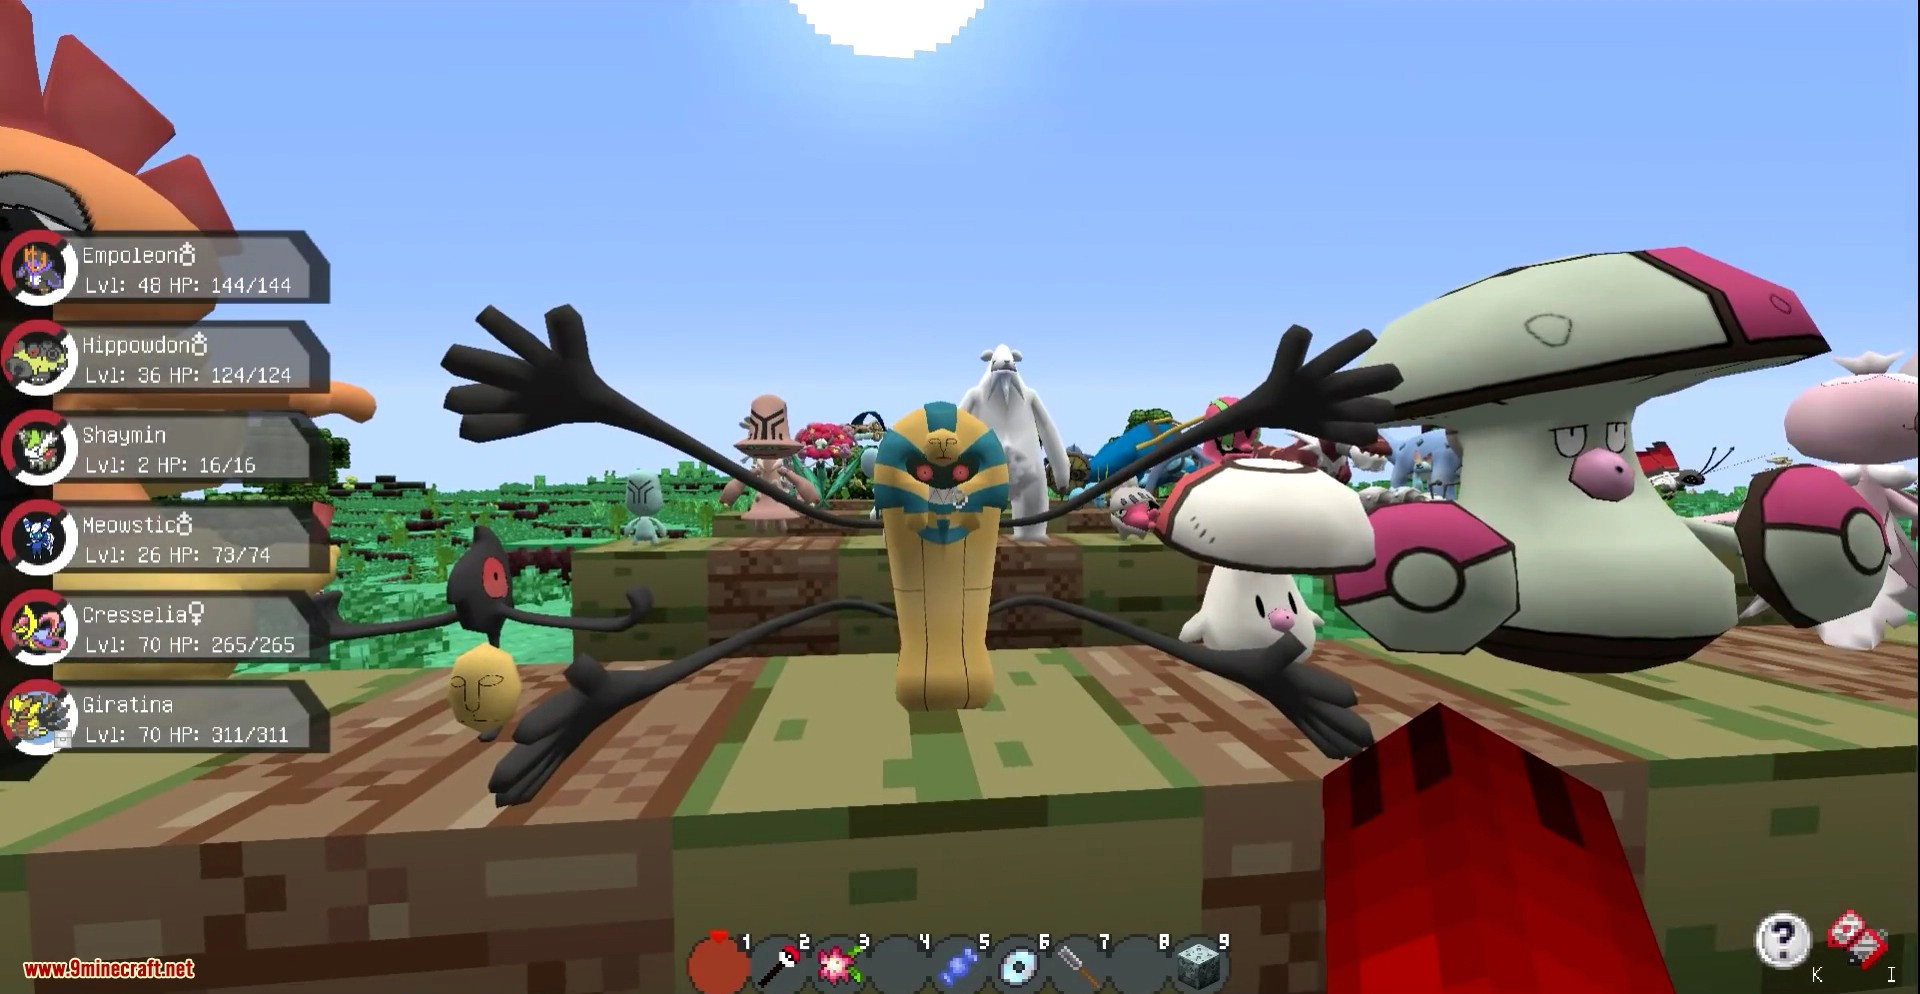 Pixelmon Mod Screenshots New 18